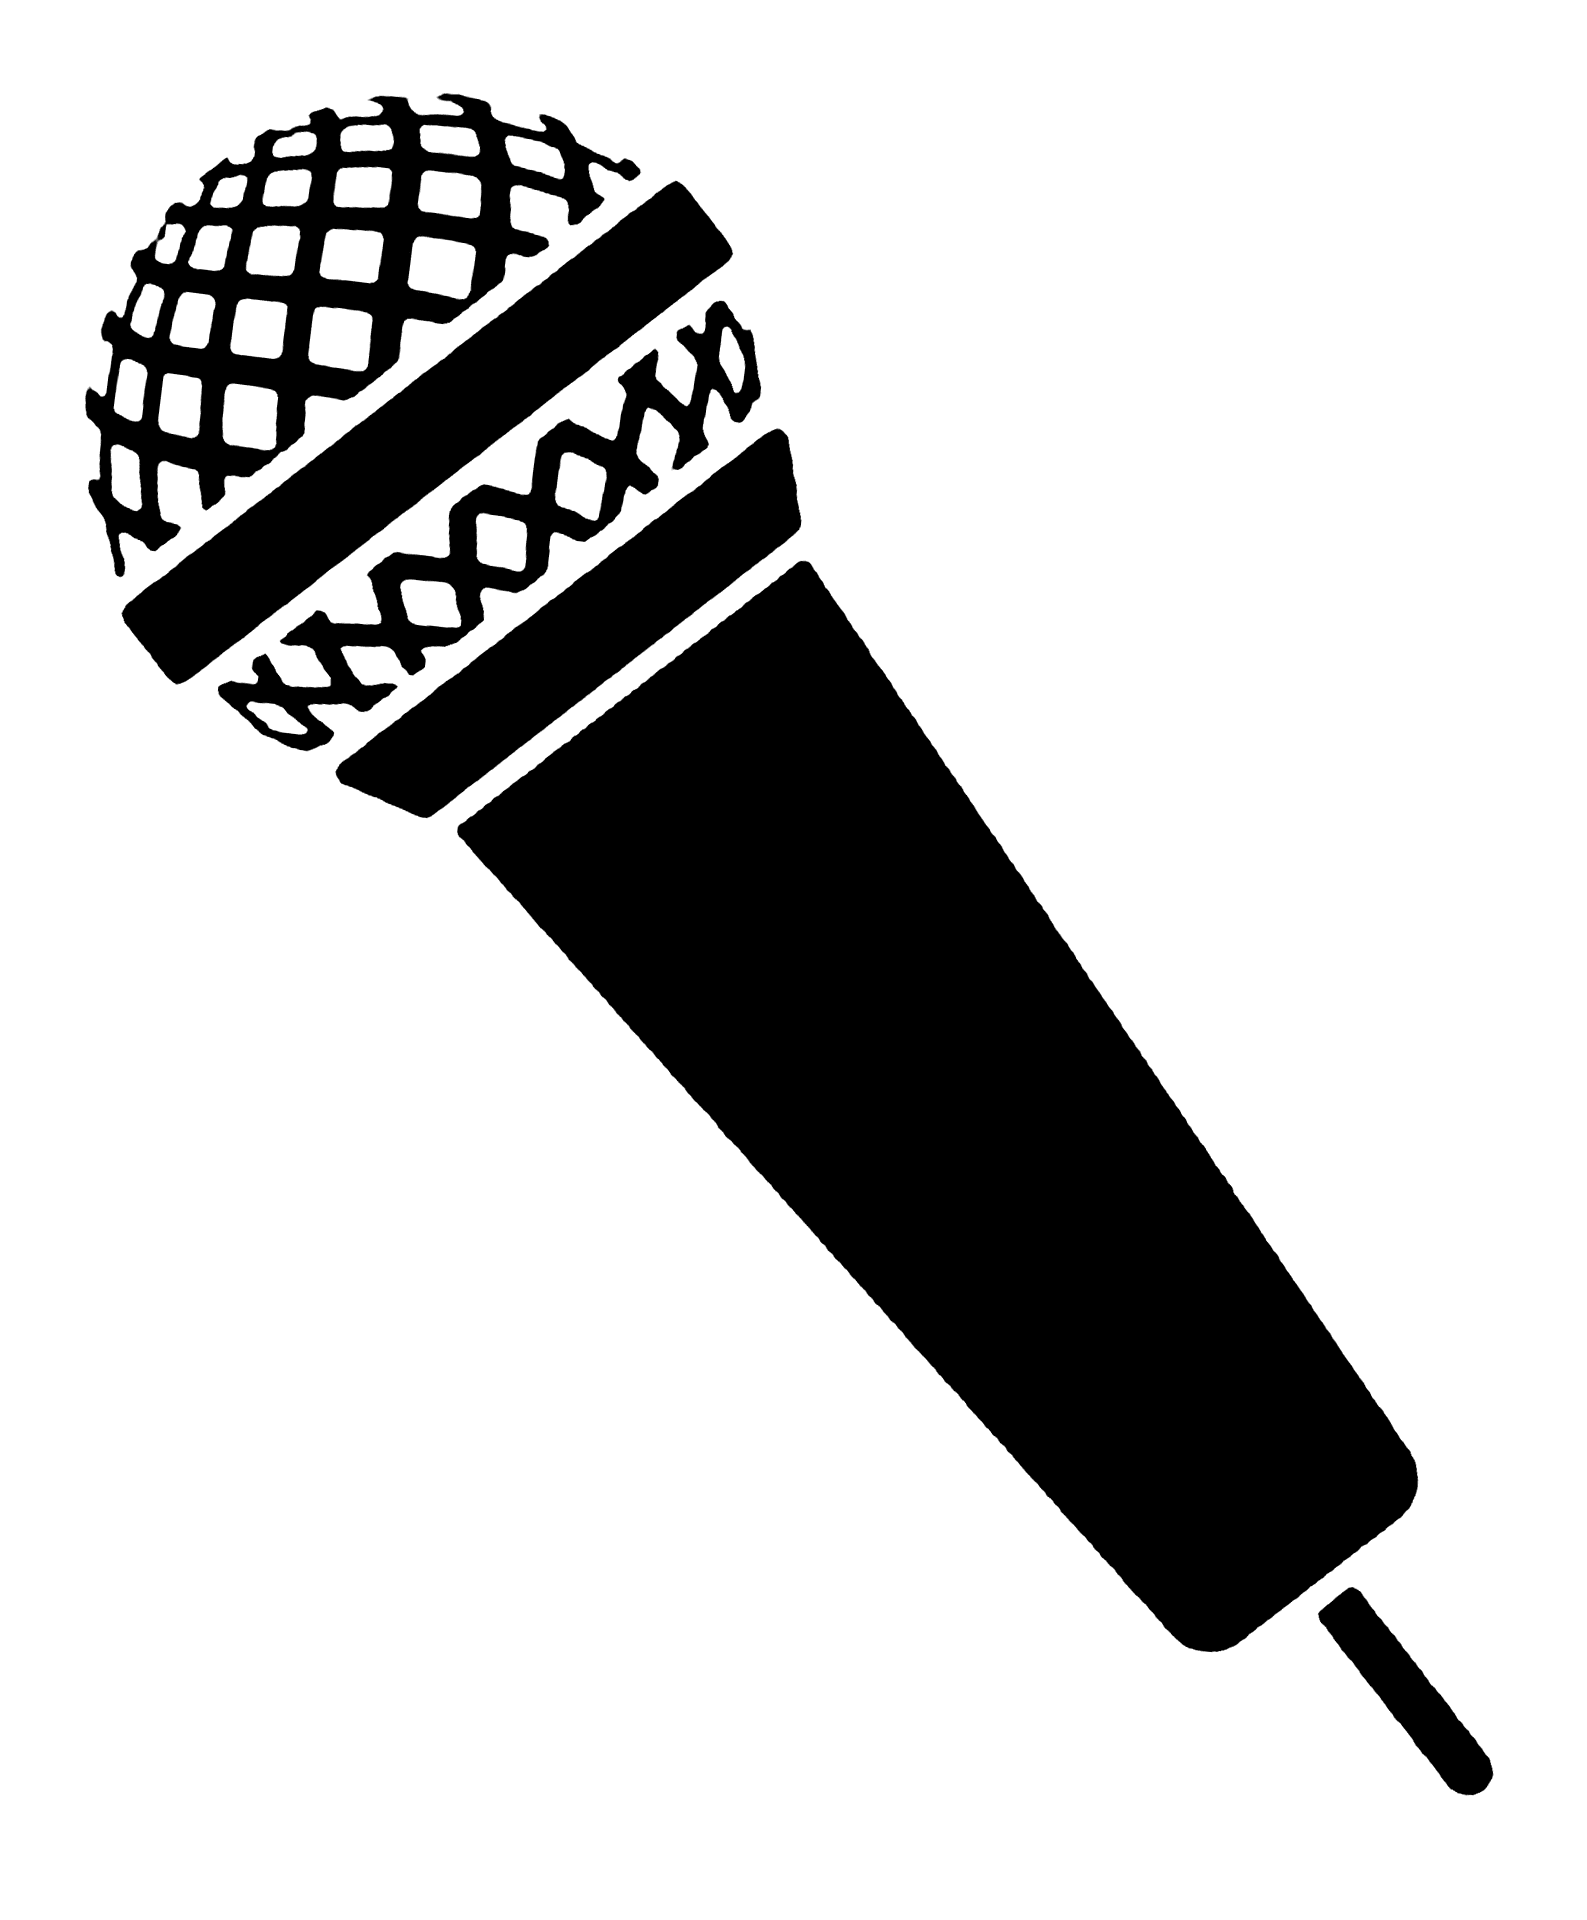 Microphone Mic Radio Clip Art - Radio Image Microphone Png - Free  Transparent PNG Clipart Images Download